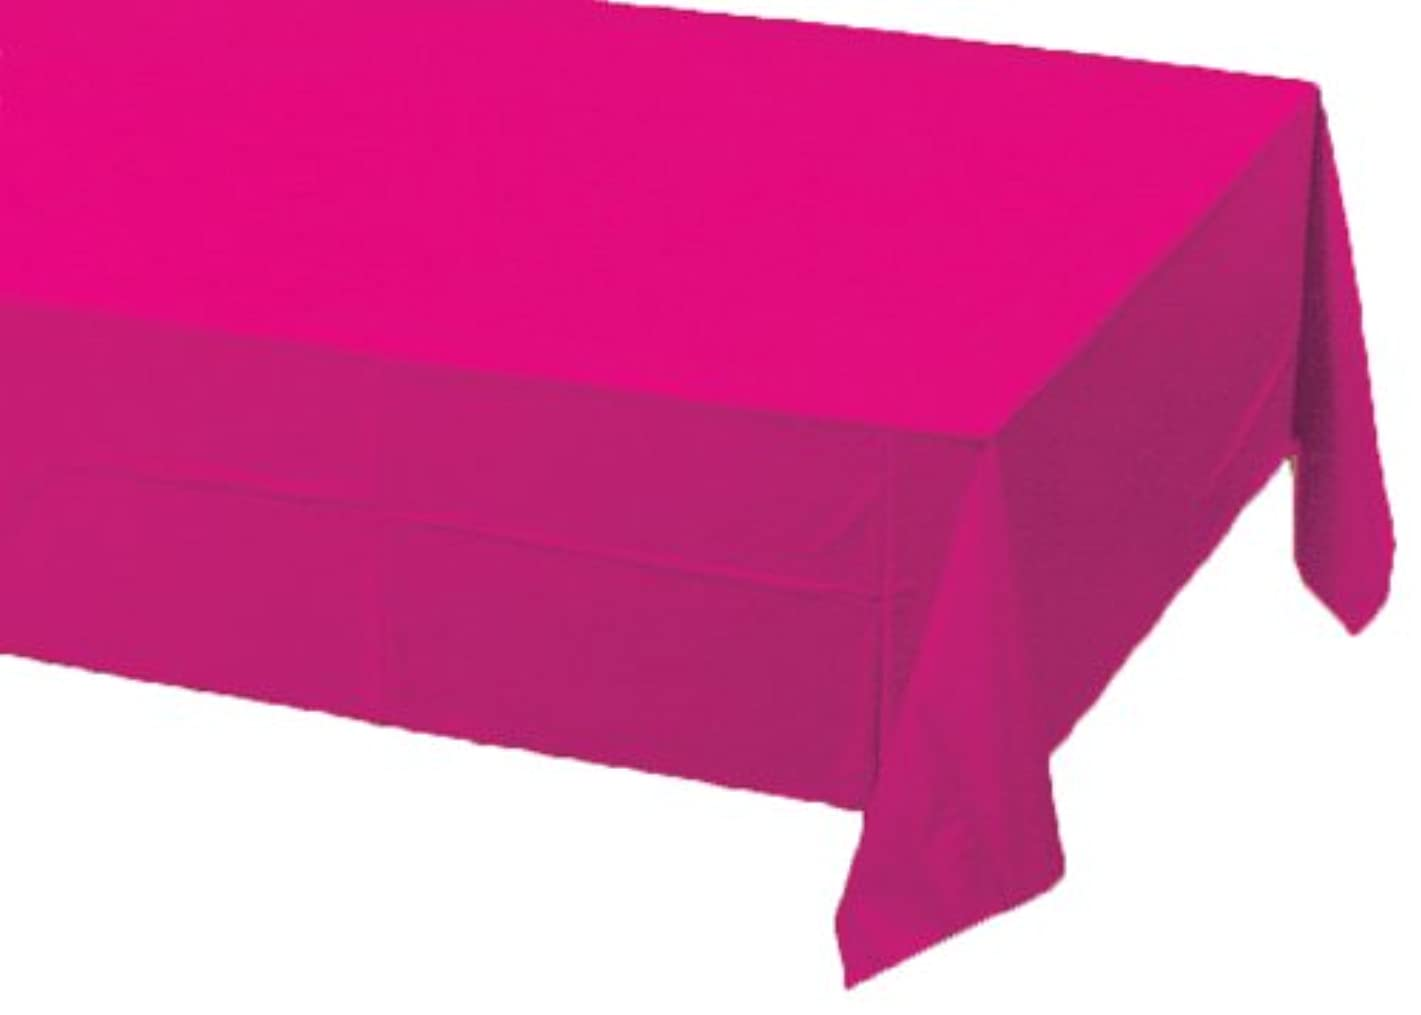 Creative Converting Paper Banquet Table Cover, Hot Magenta